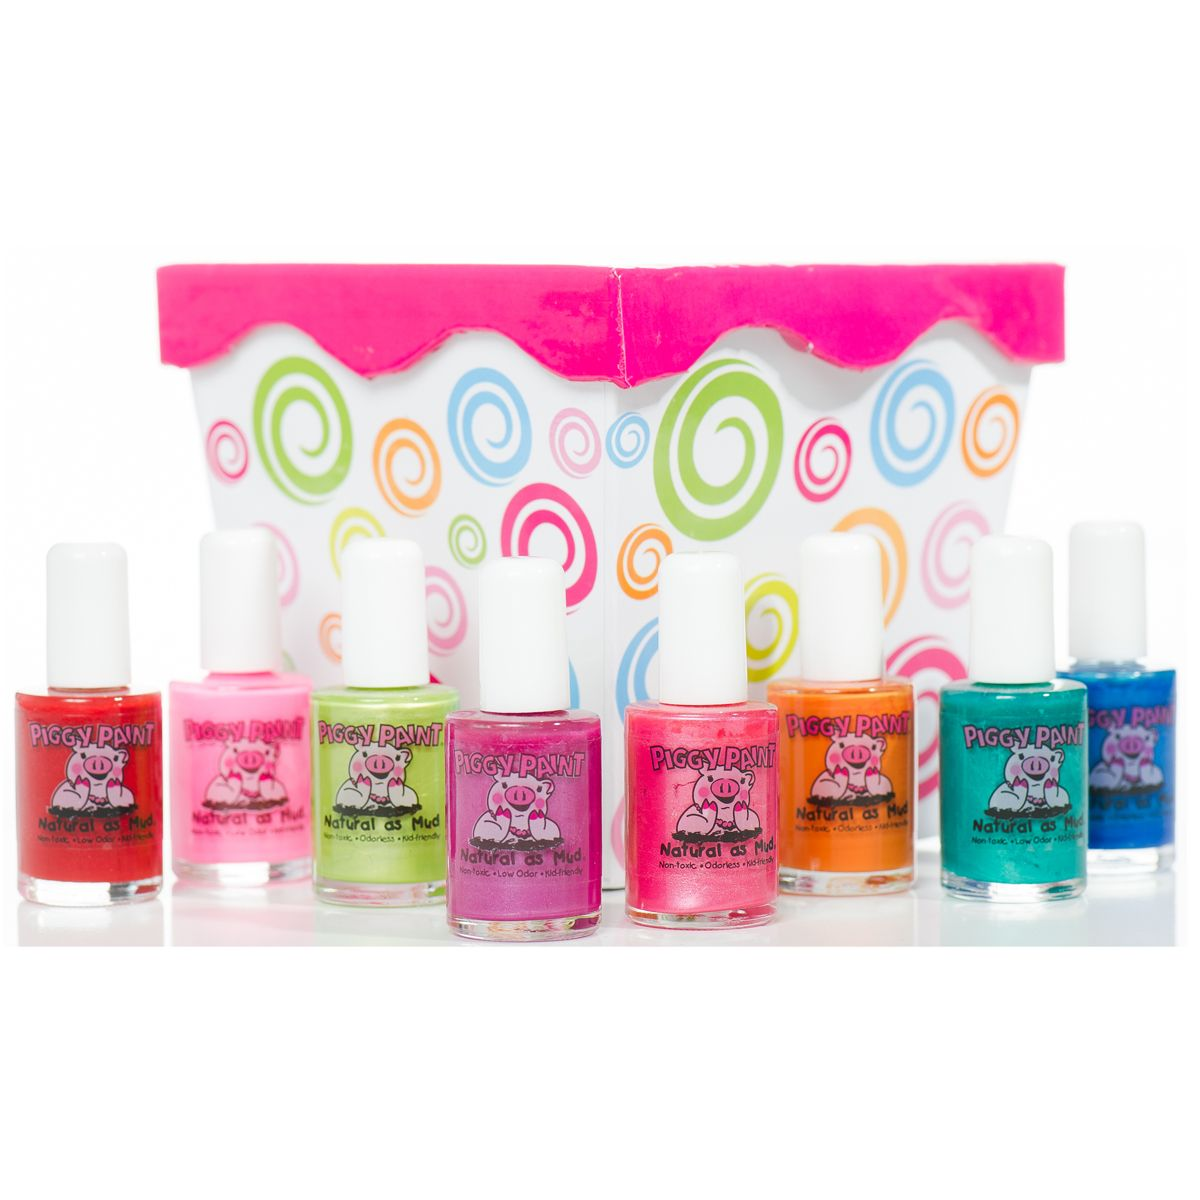 Piggy Paint | Natural, Non-Toxic, Odorless Nail Polish | CHILD SAFE ...